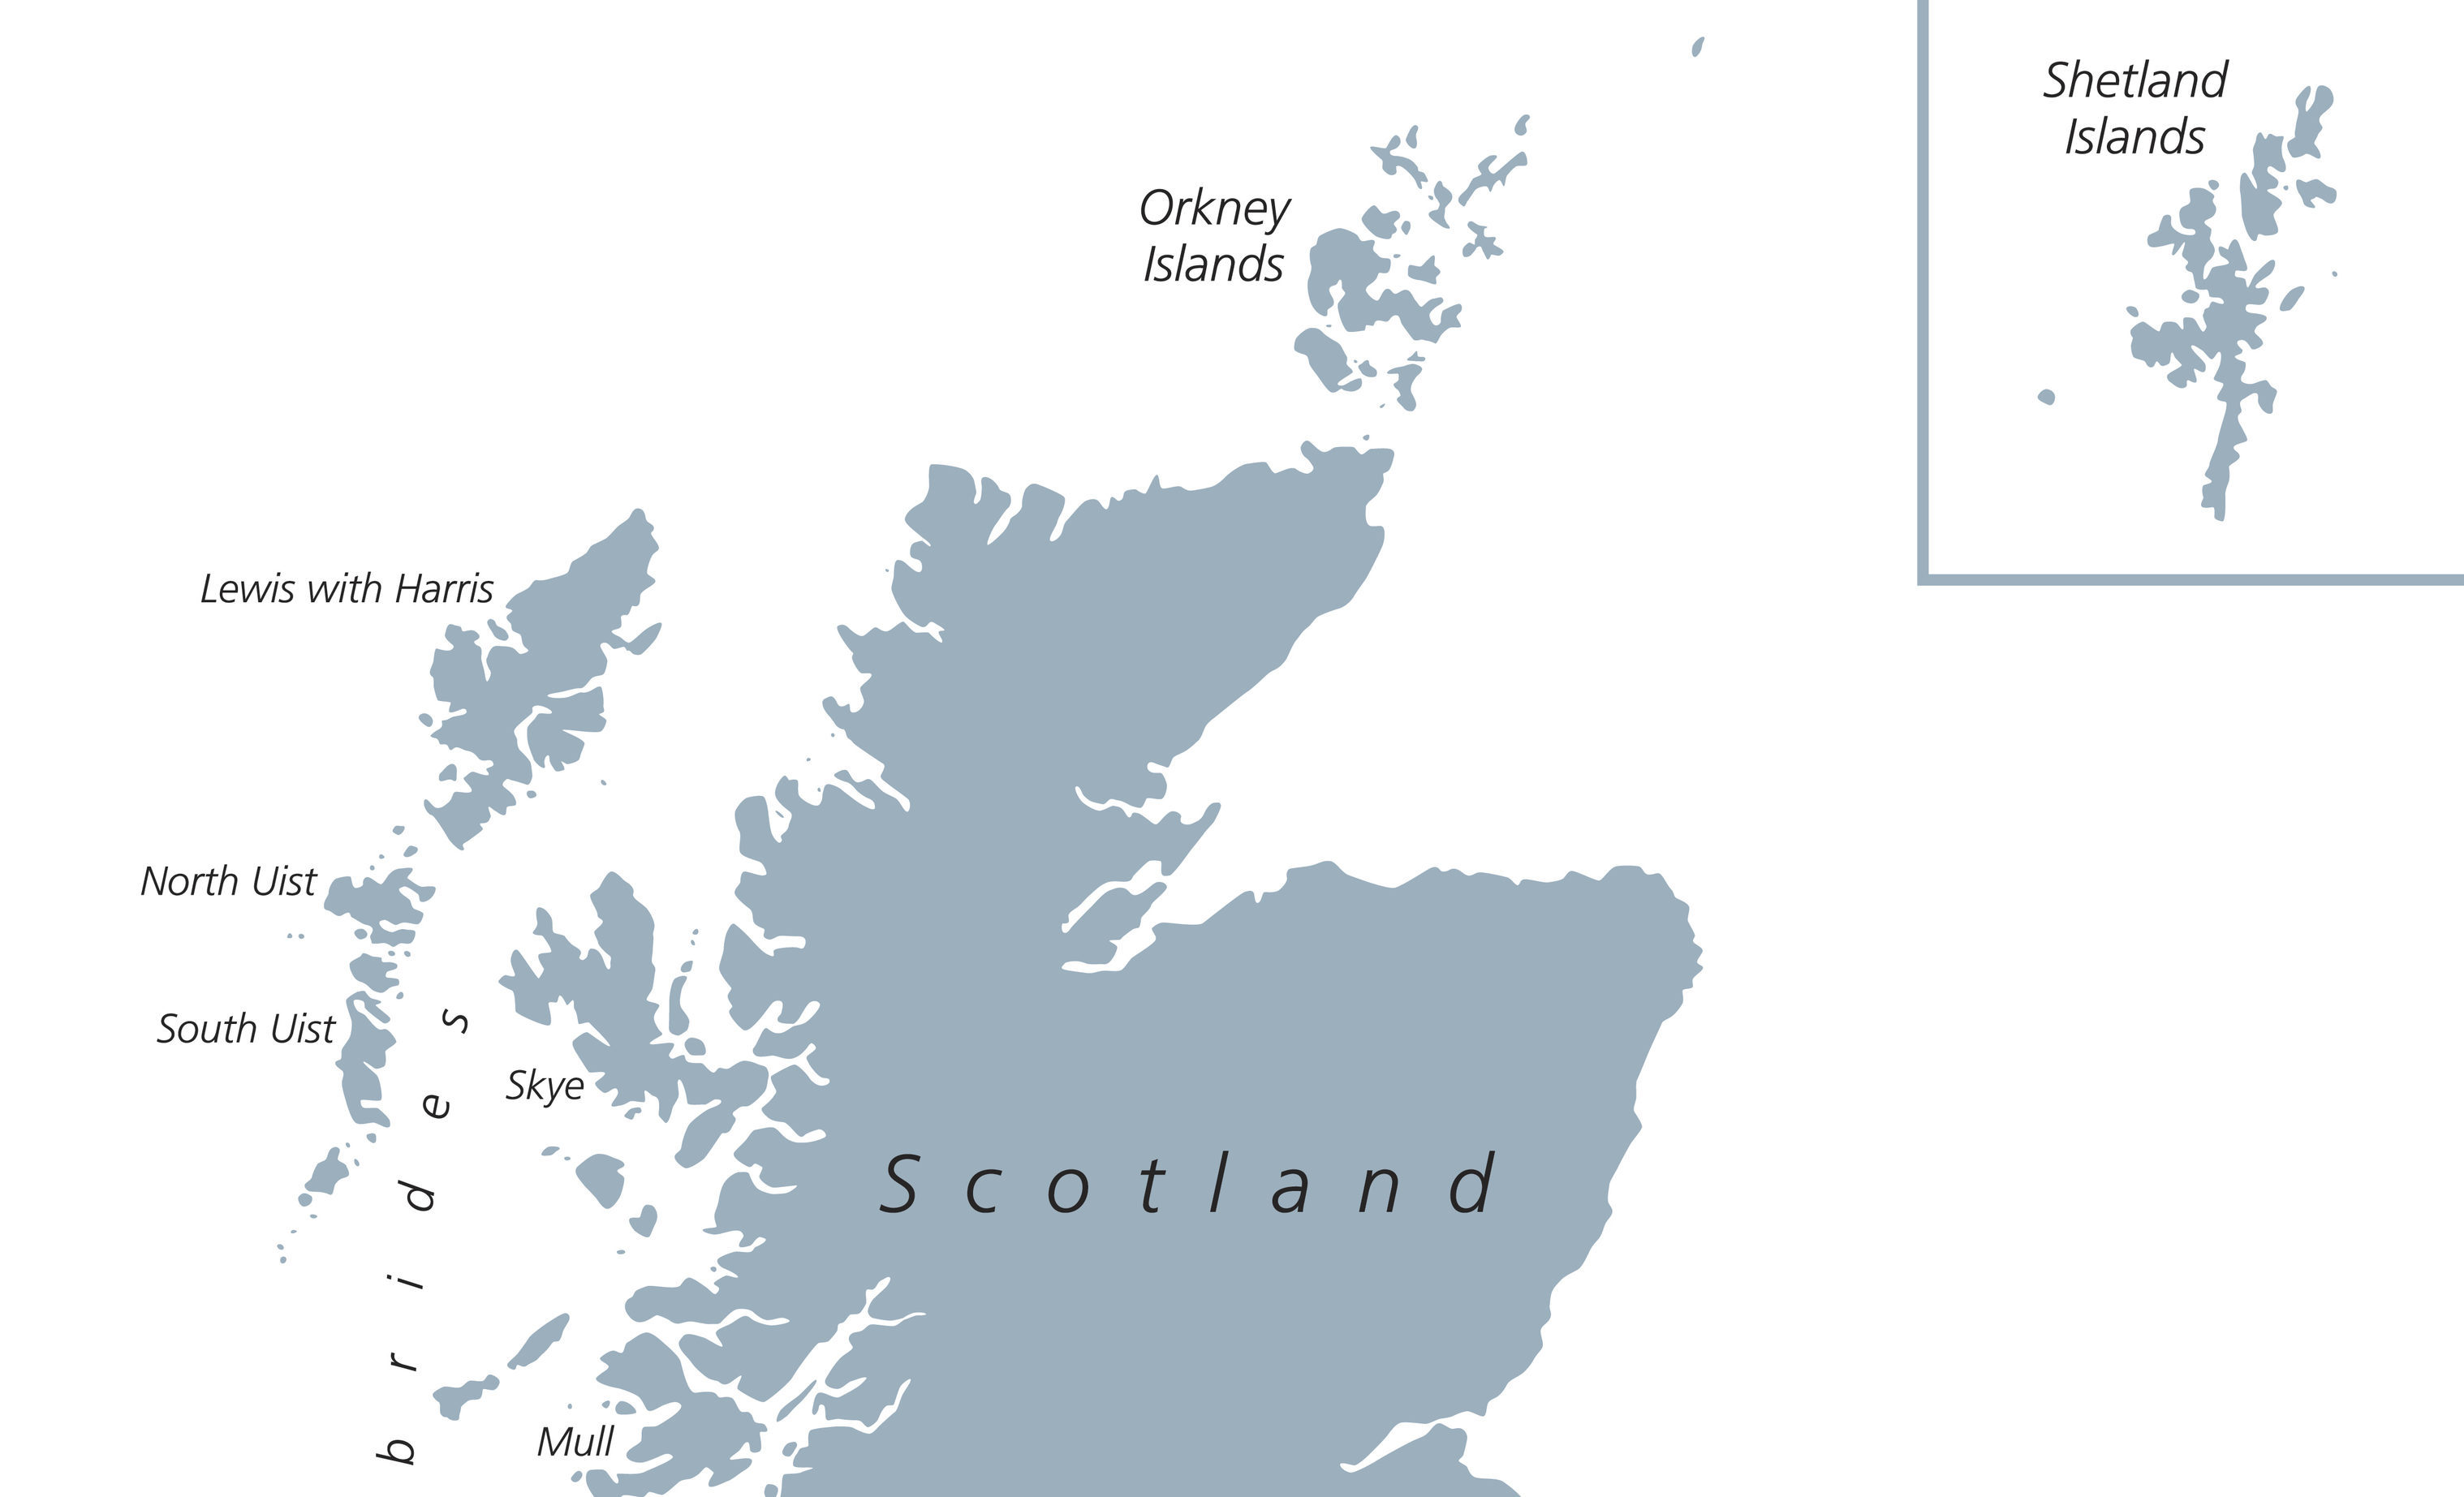 Up until now, Shetland was often seen hanging around the coasts of Moray or Fraserburgh which has been labelled geographically misleading. (Getty)